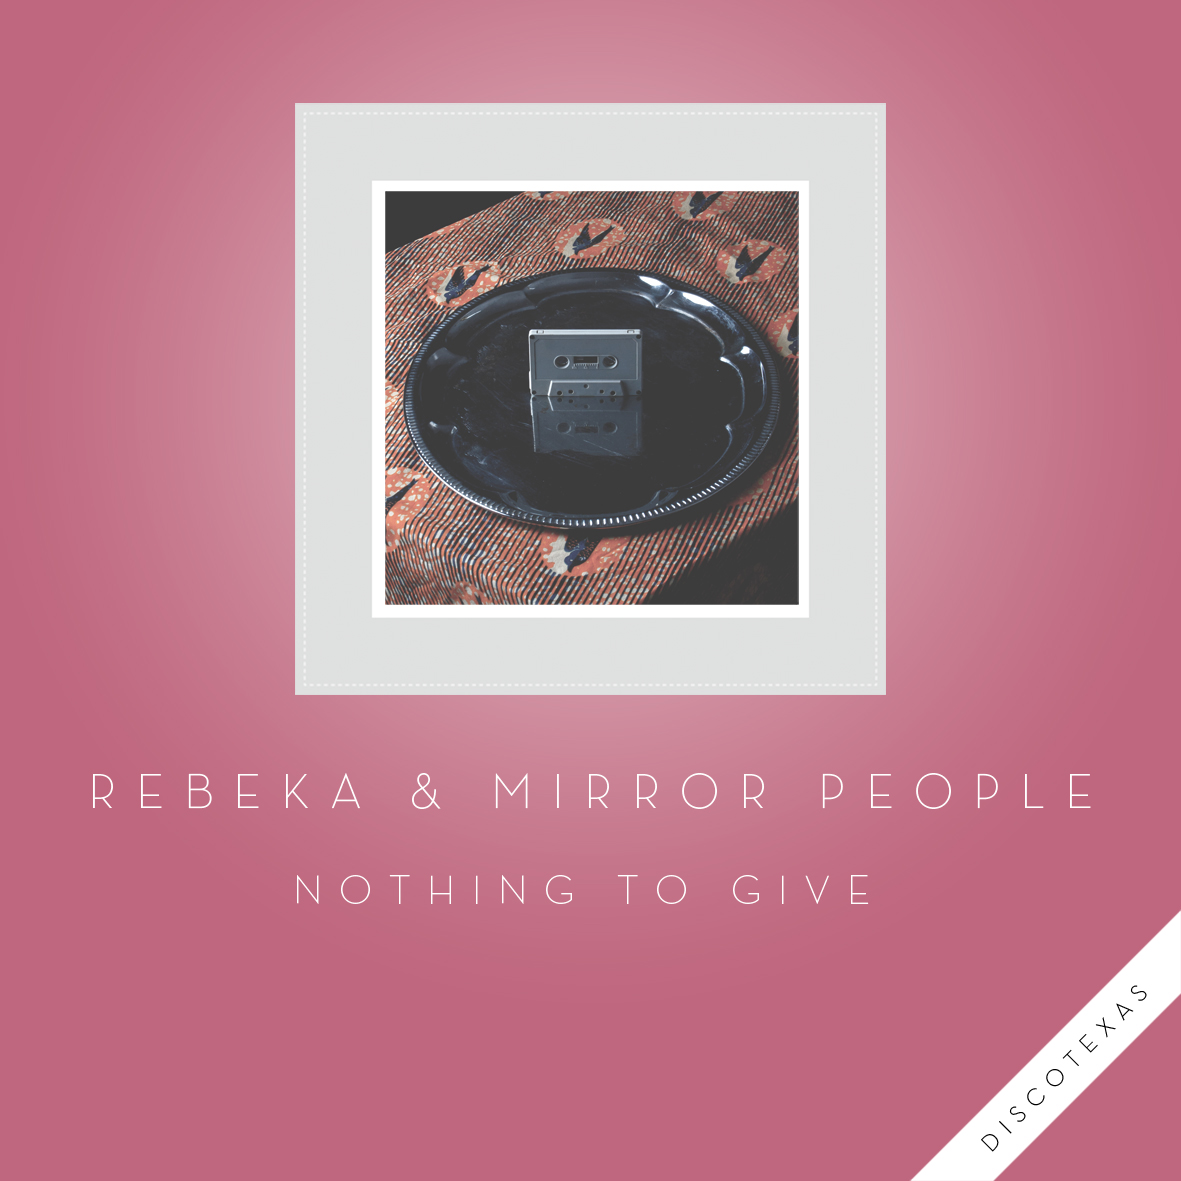 DT035: Rebeka & Mirror People - Nothing To Give